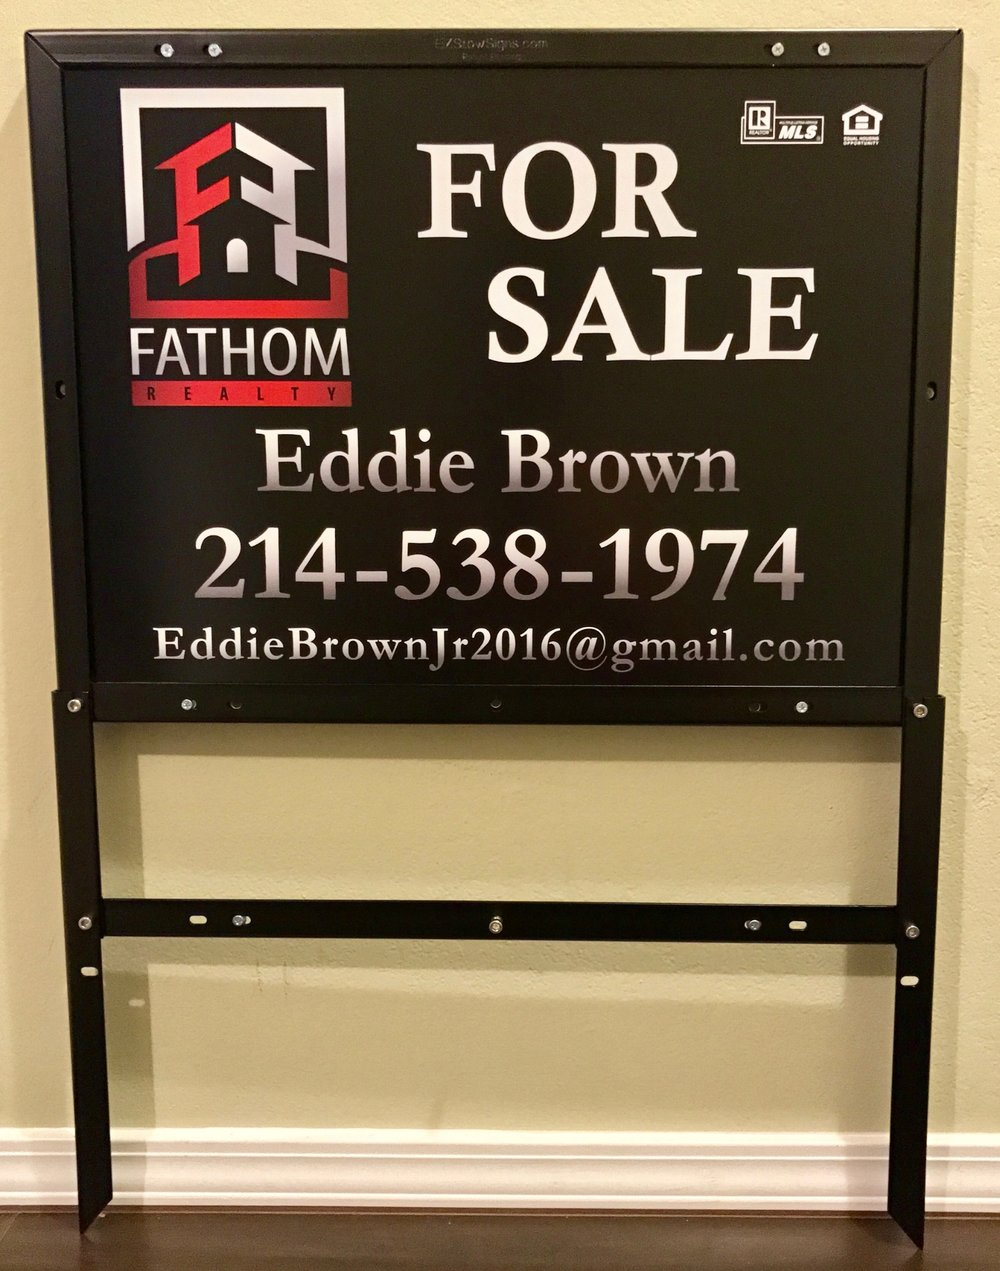 Fathom Realty 18%22 x 24%22 Panel & EZ Frame.jpeg